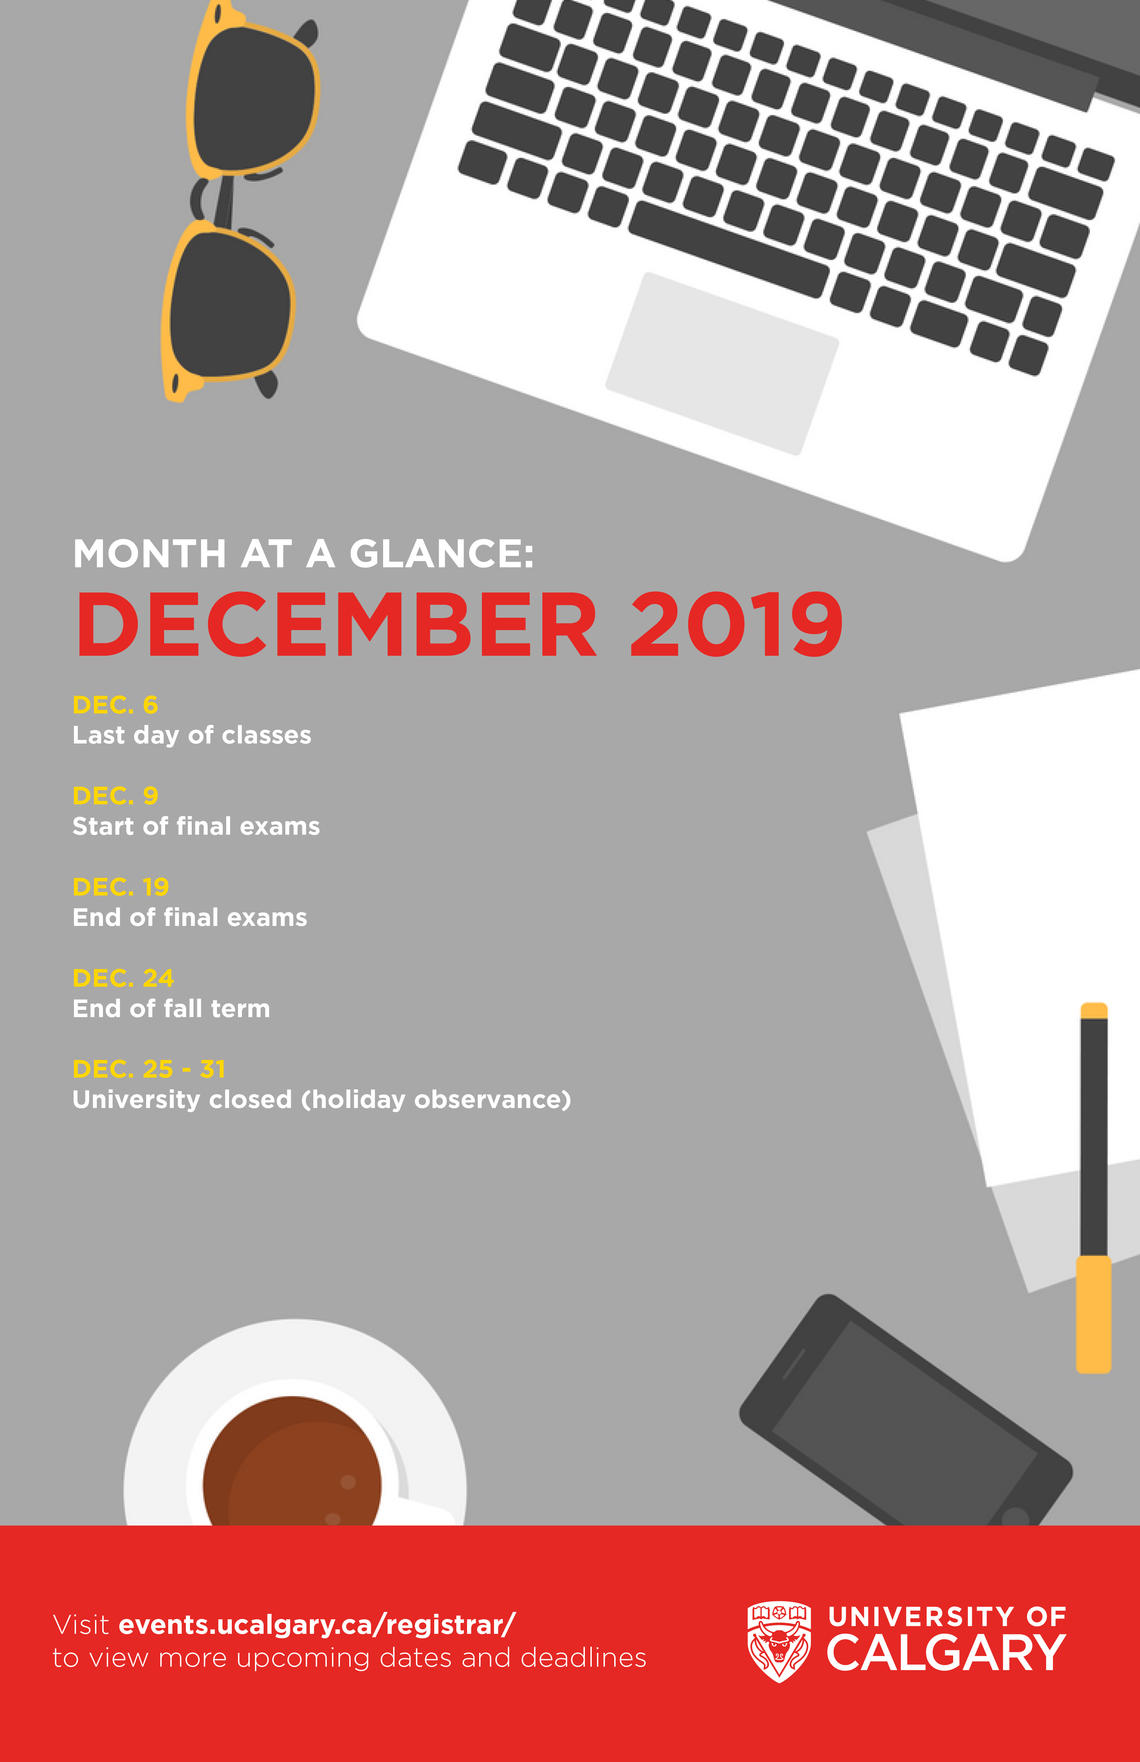 December at a glance